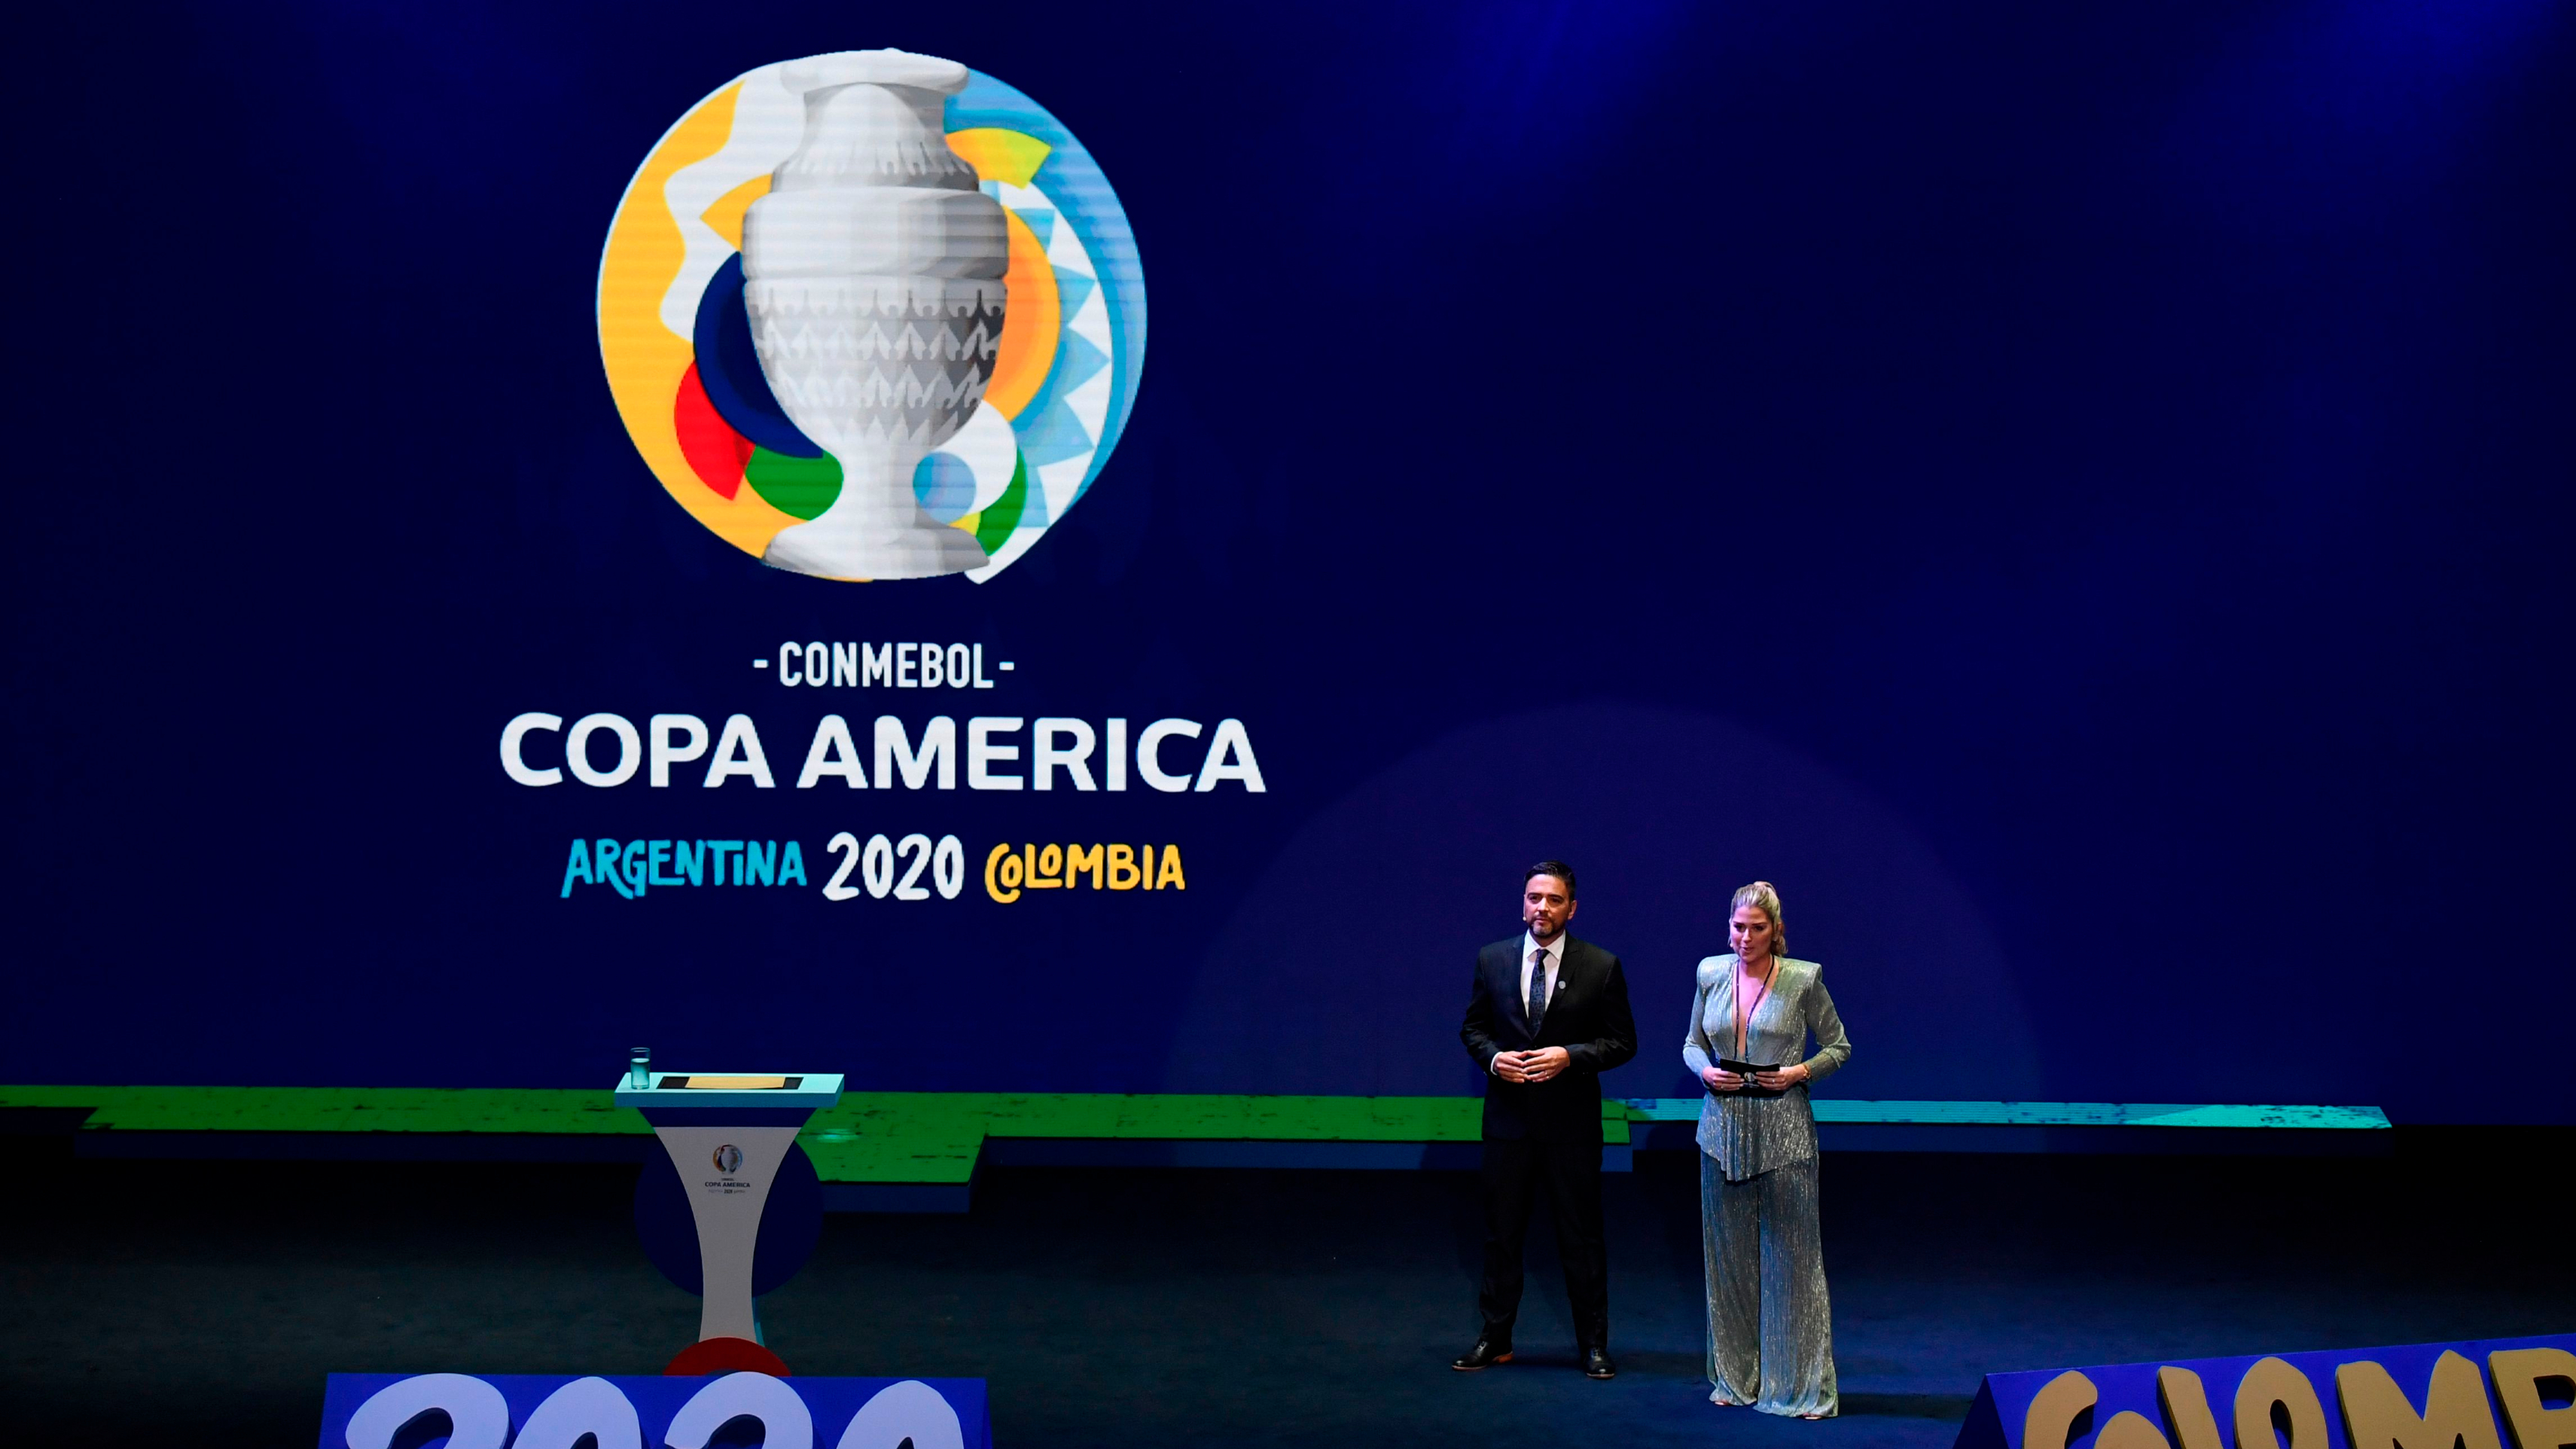 Copa America draw decided with Australia and Qatar added to the mix